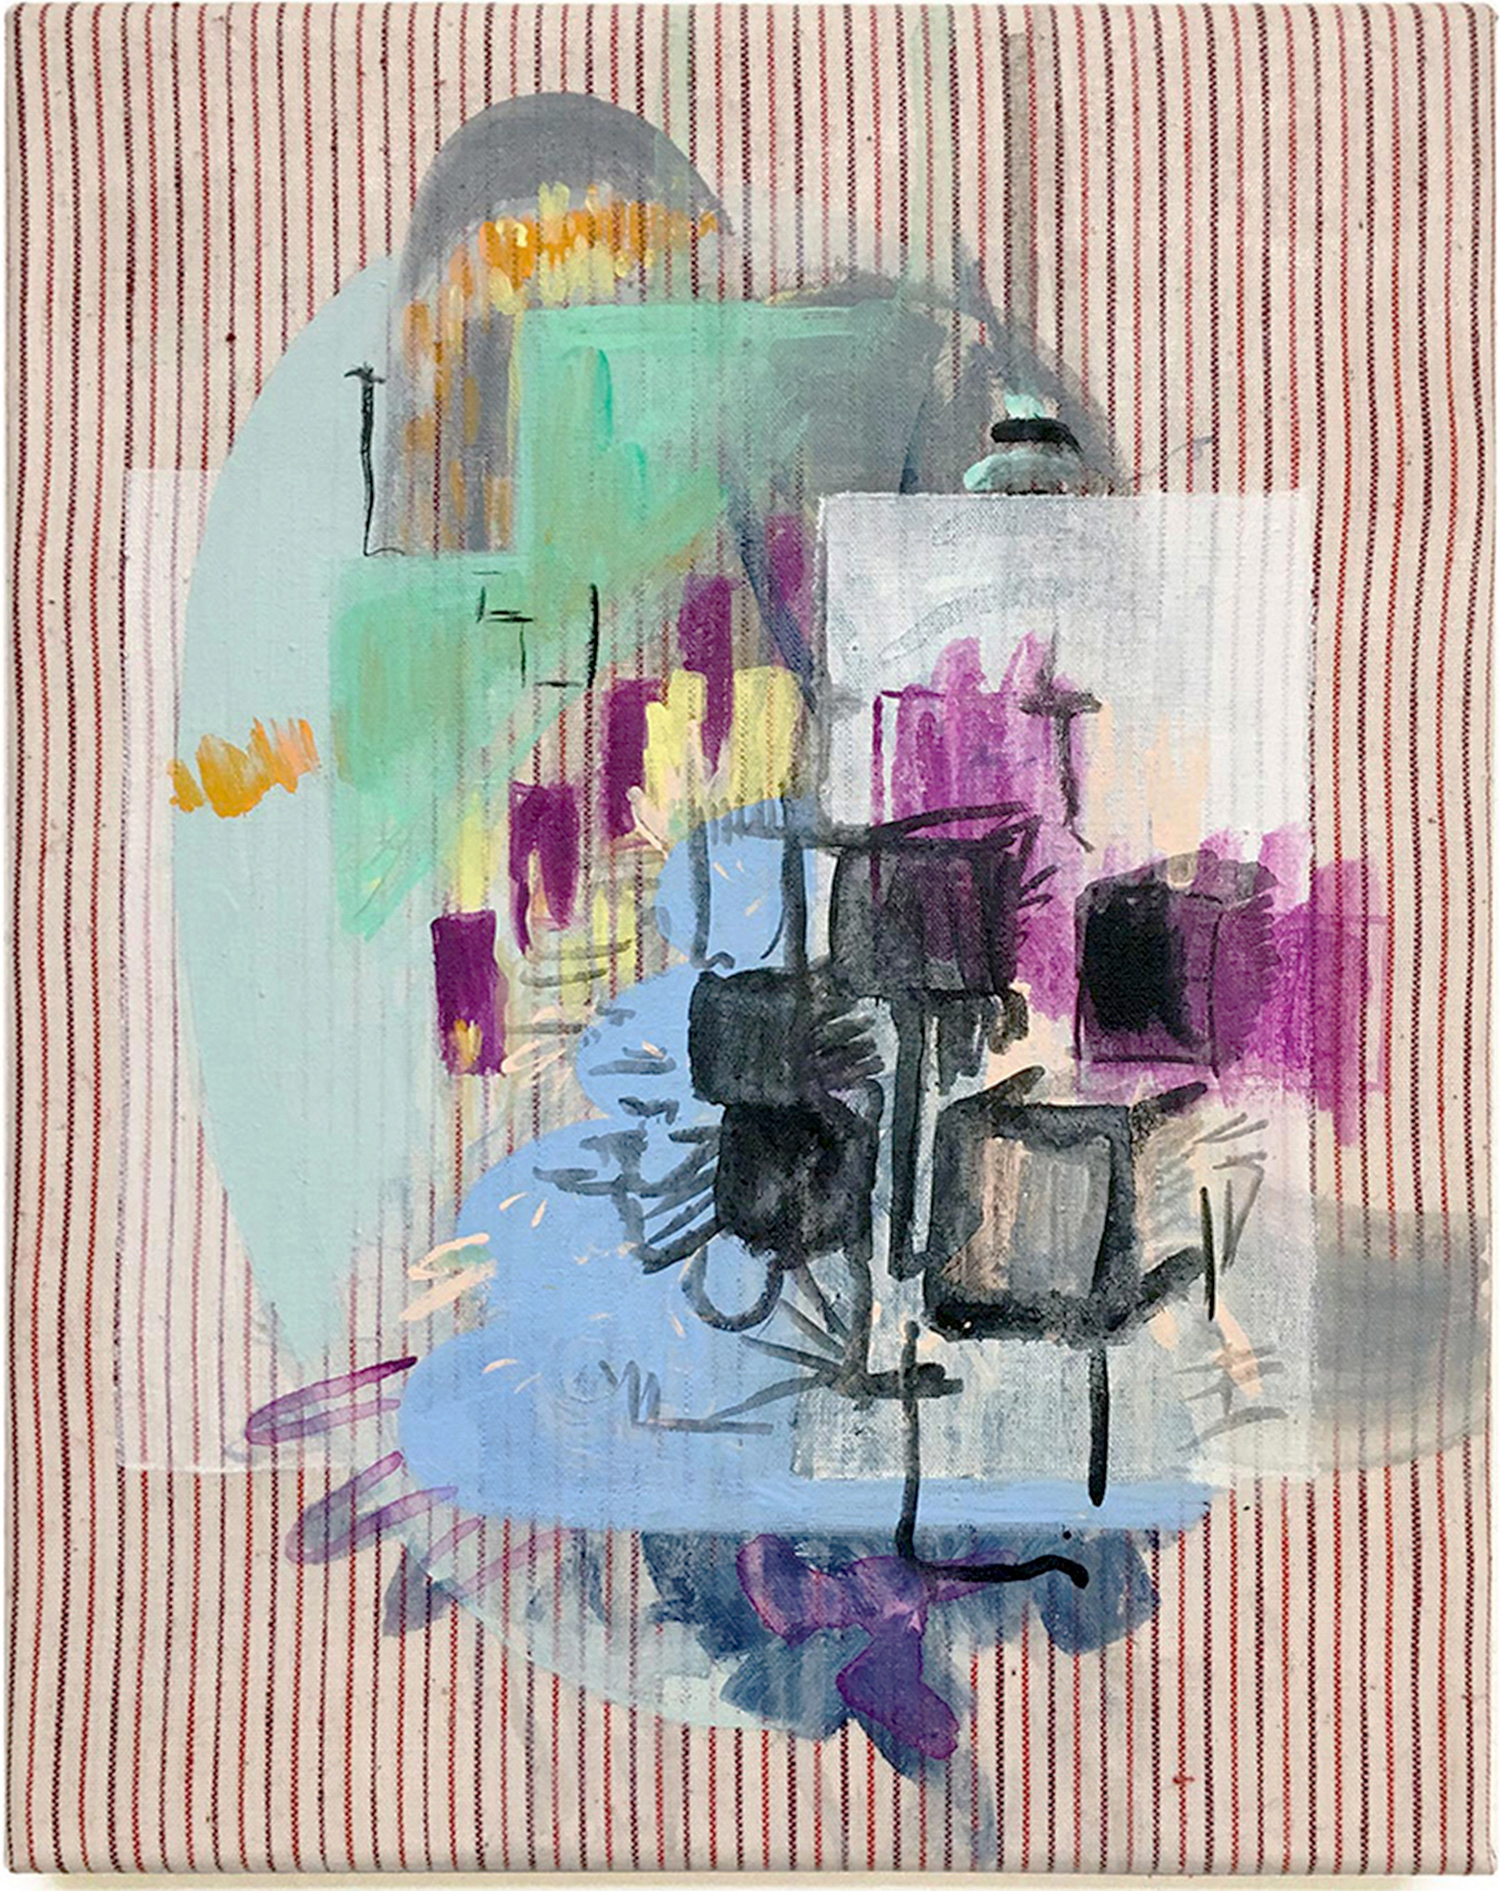 Nina-Tobien-contemporary-art-painting-found-textile-stripes-clothes-setting-the-scene-stage-design-movie-set-props-stage-cases-colors-curtains-lightning-backdrop